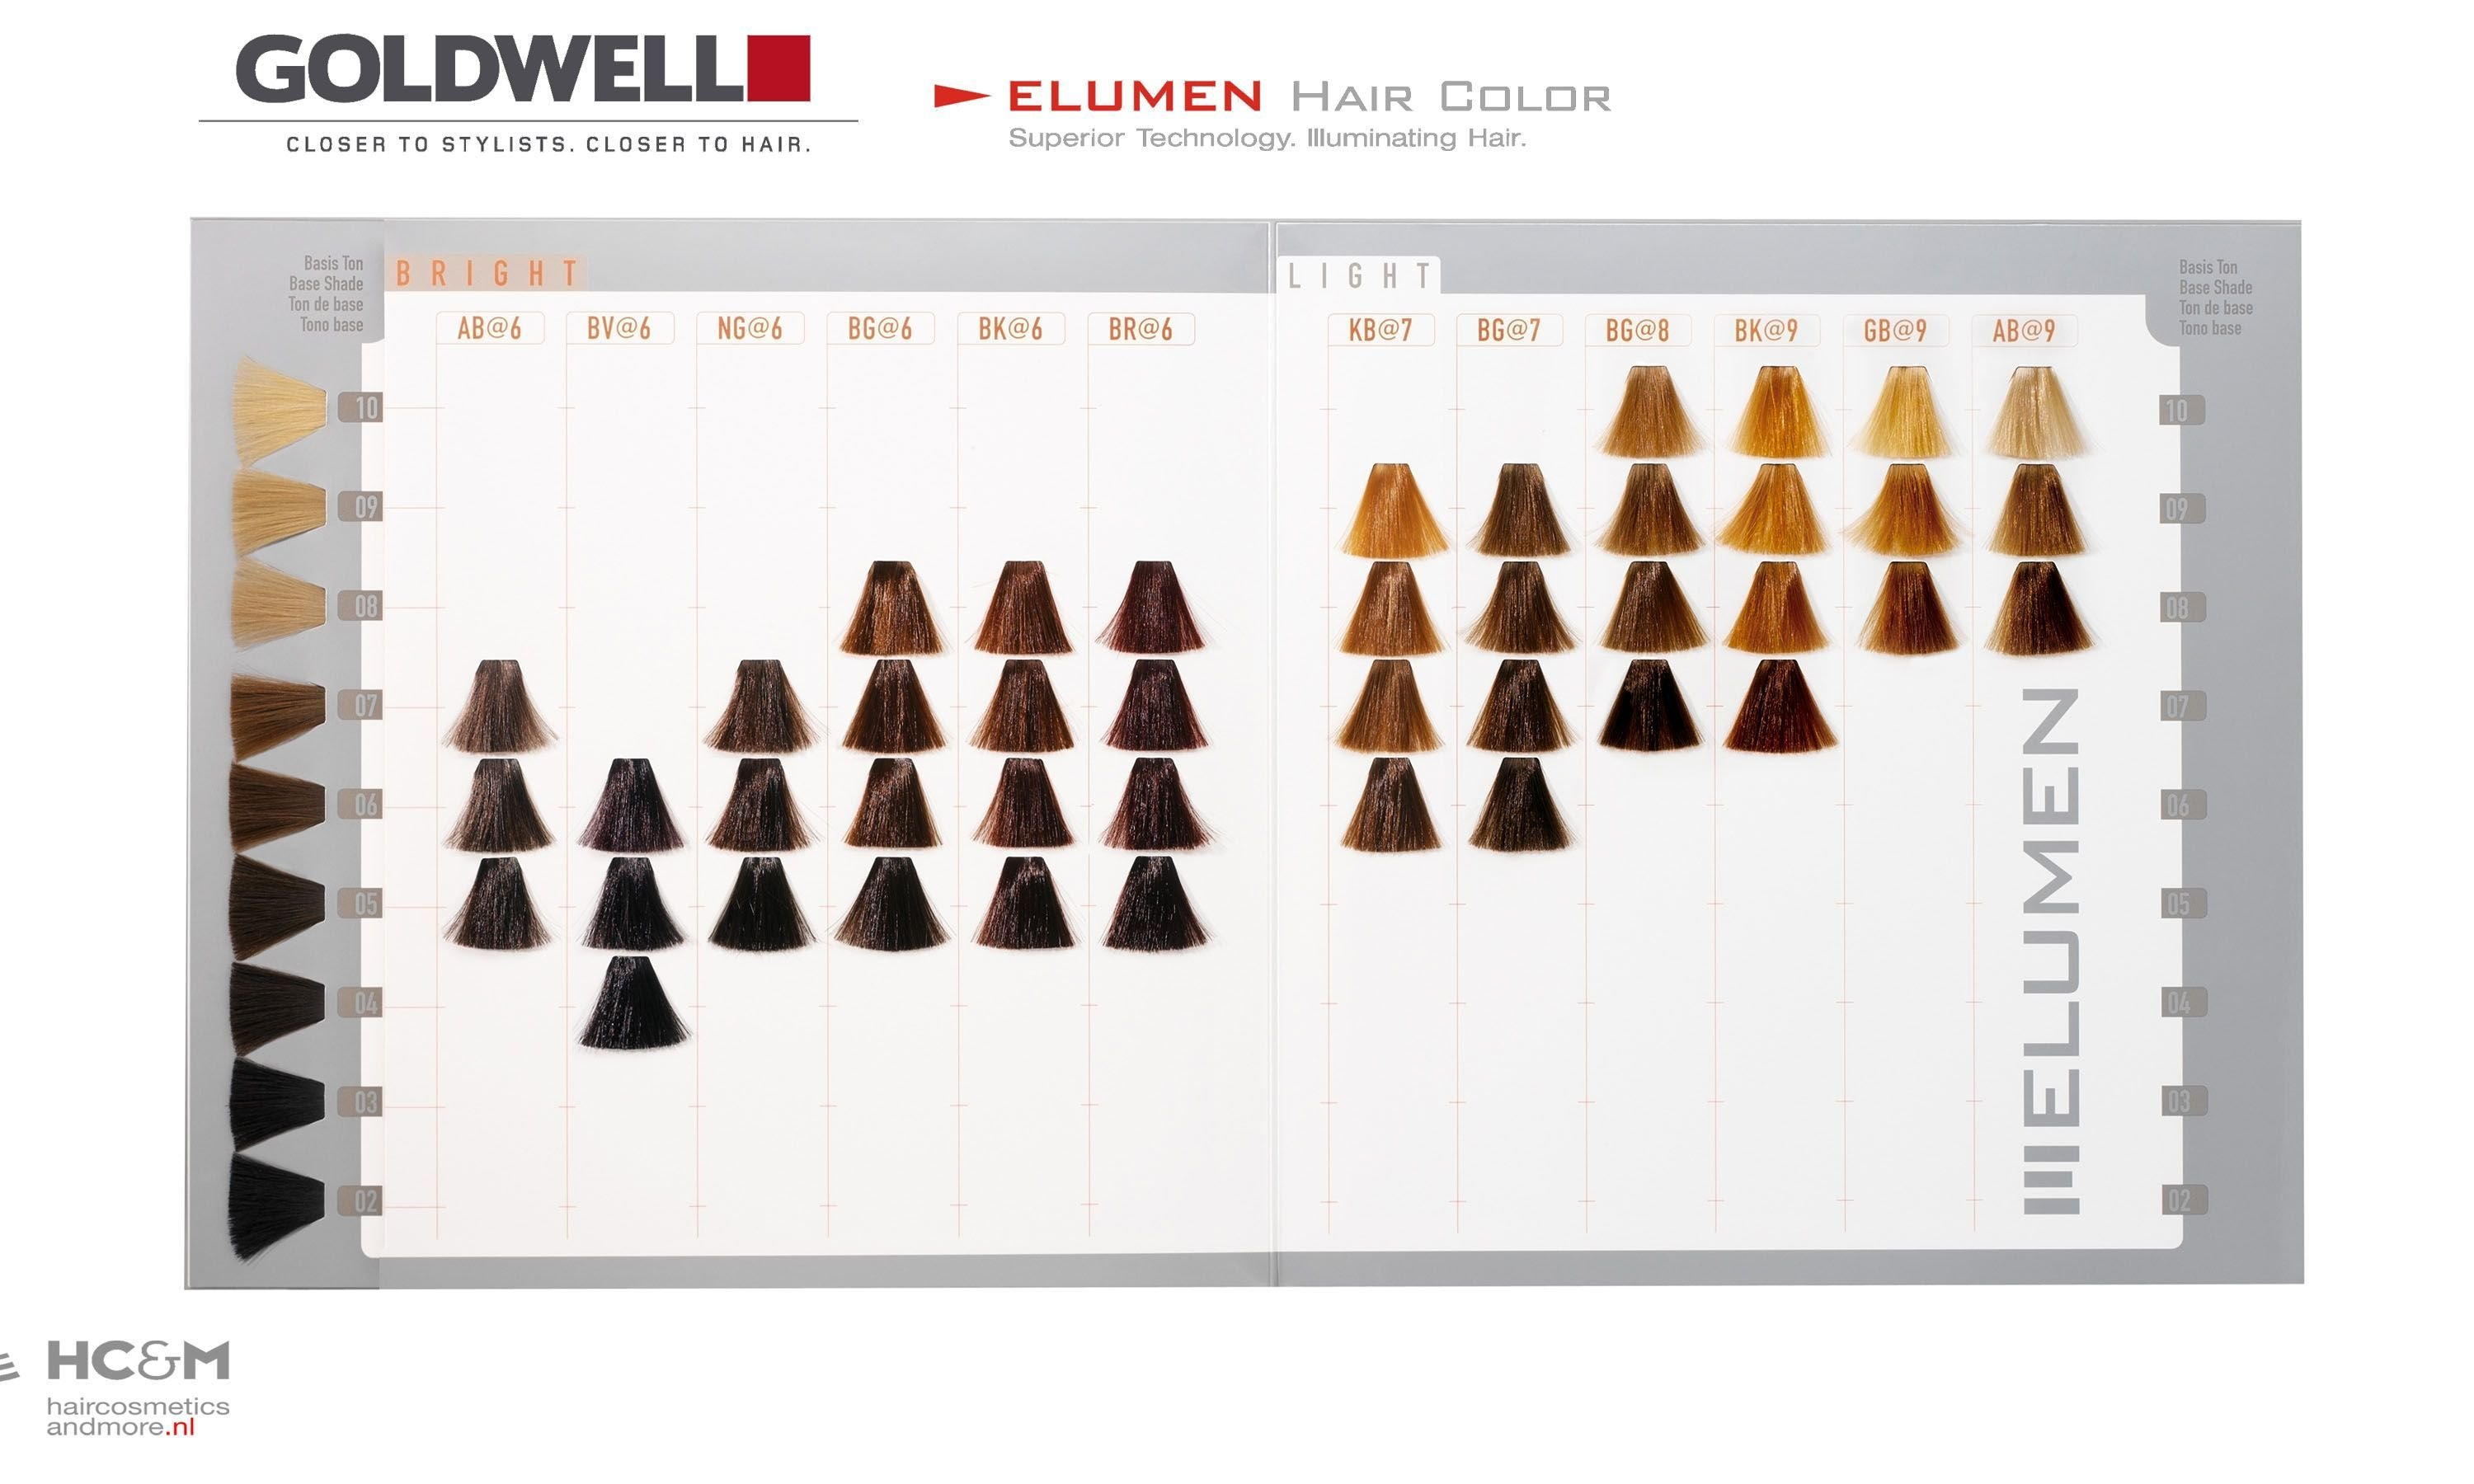 The Best Goldwell Elumen Color Chart Previous Color Charts Pictures